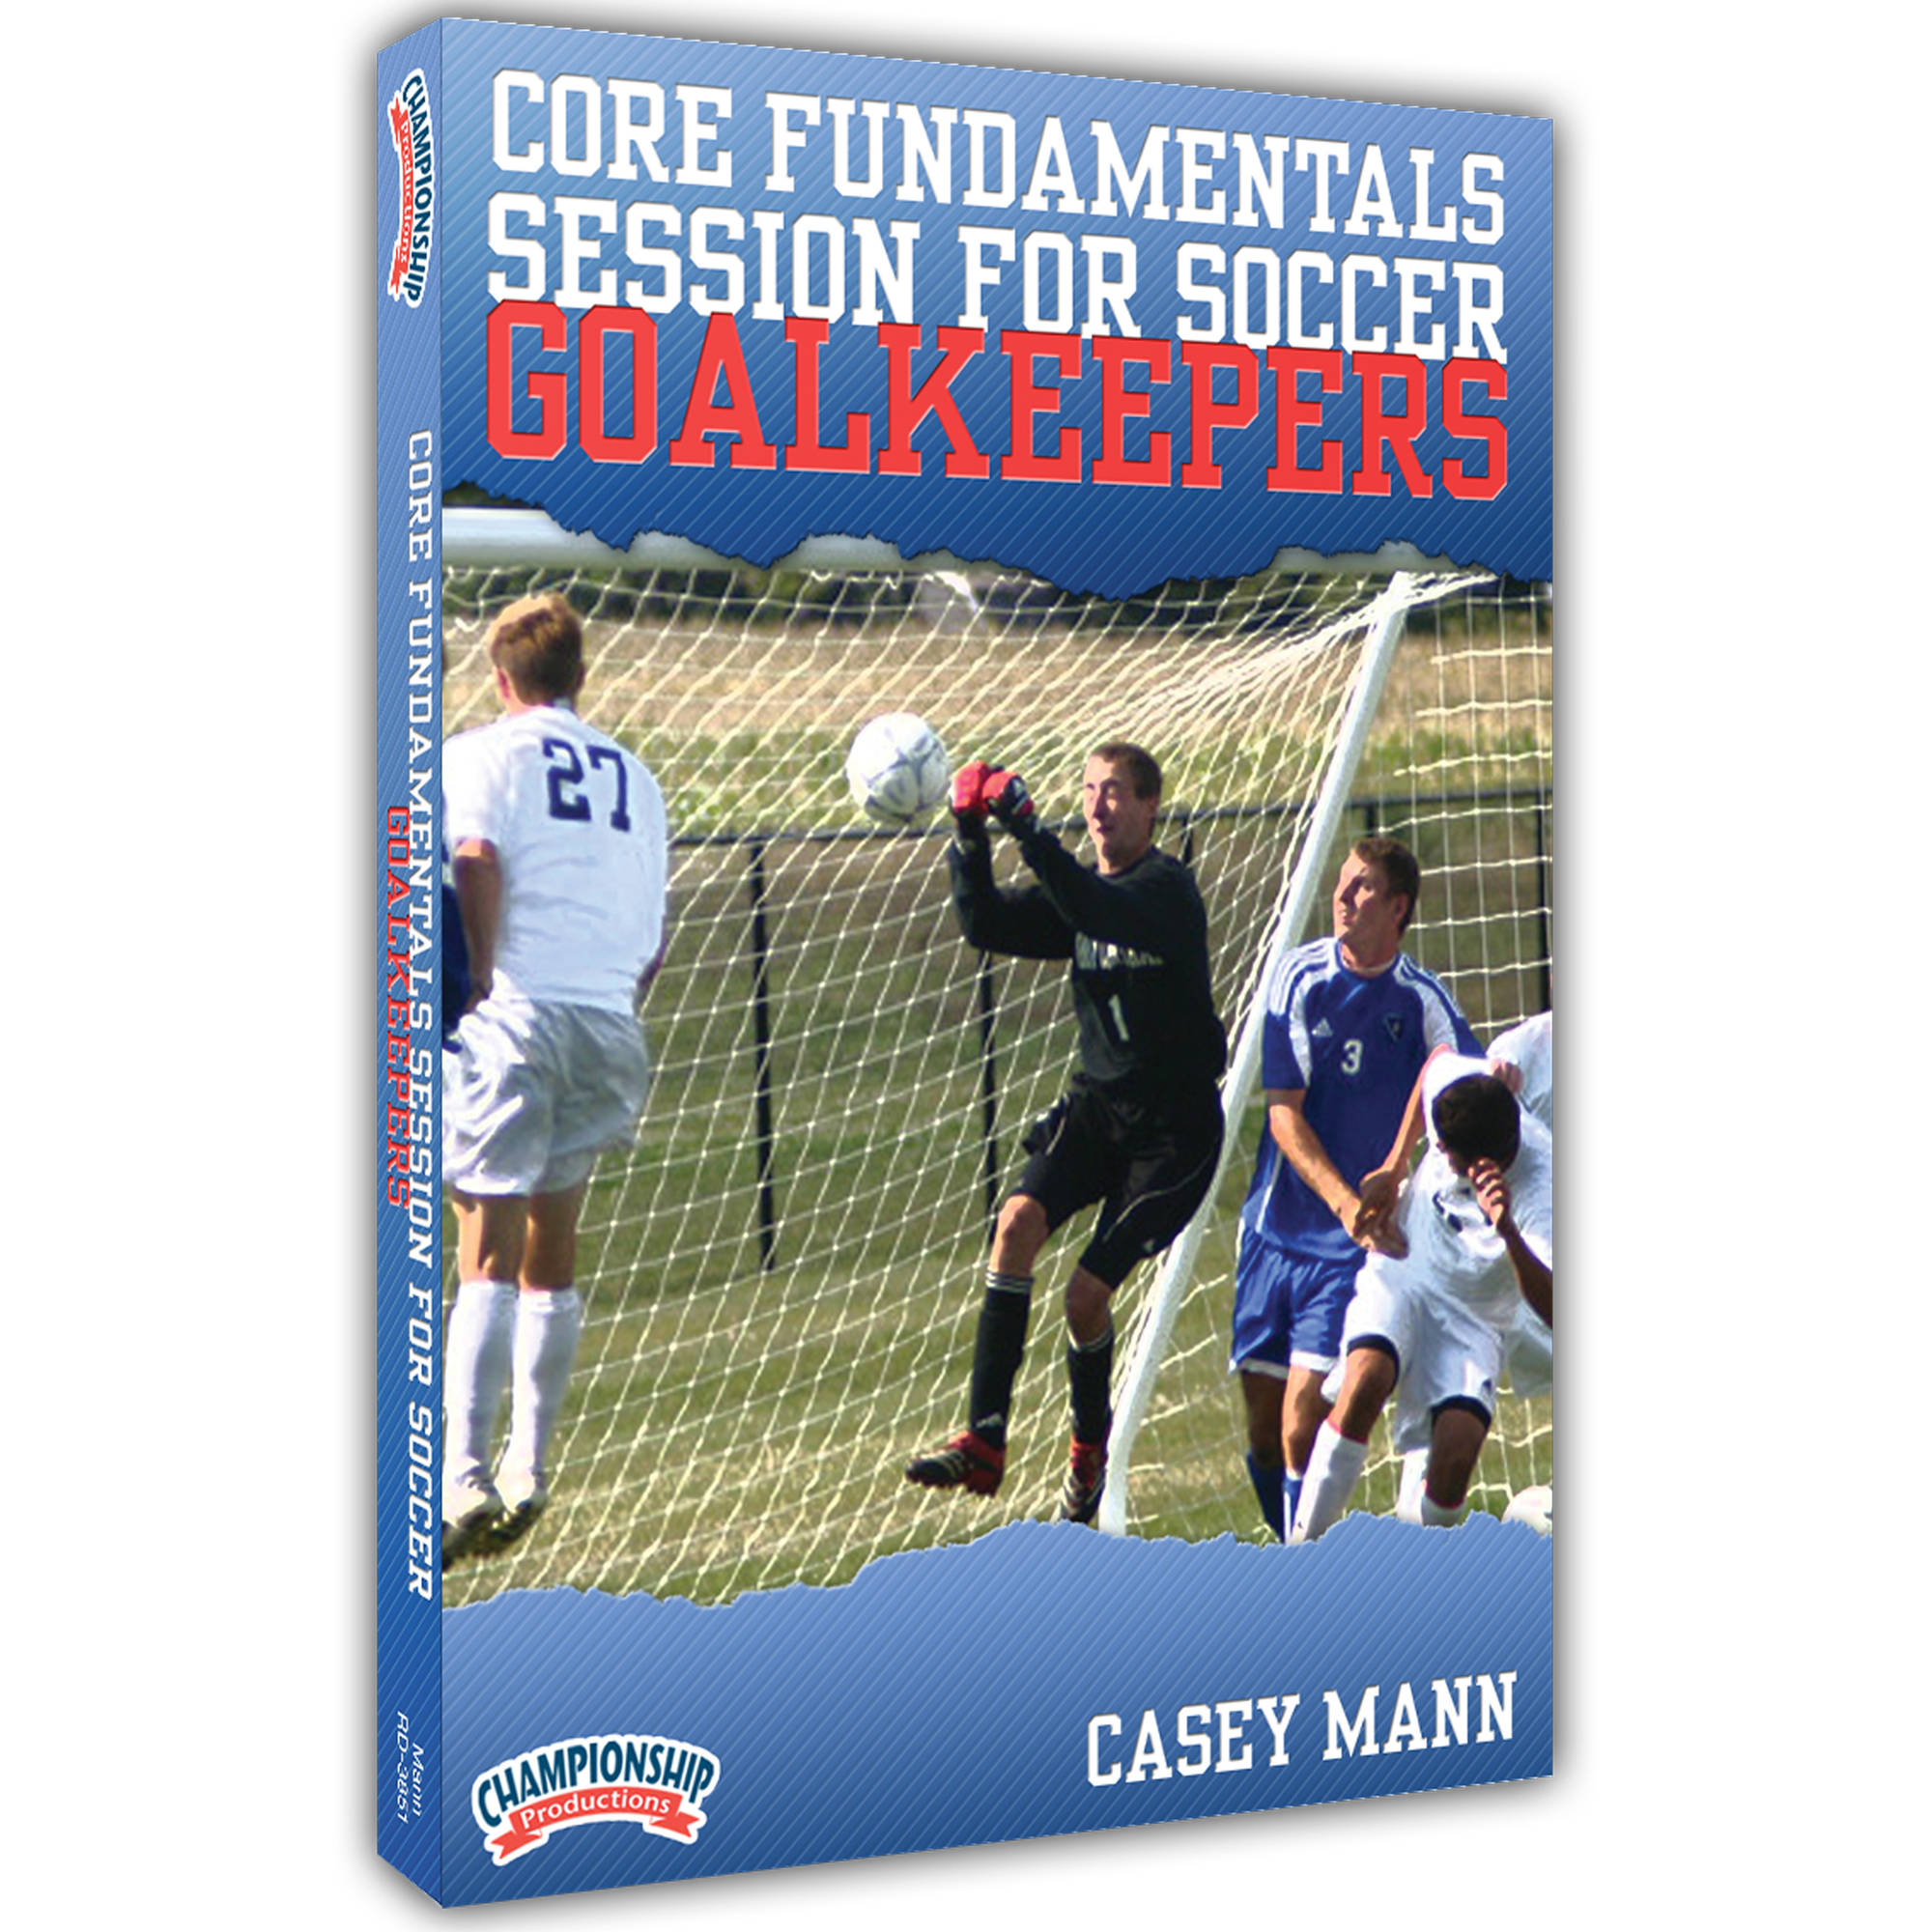 Core Fundamentals Session for Soccer Goalkeepers DVD